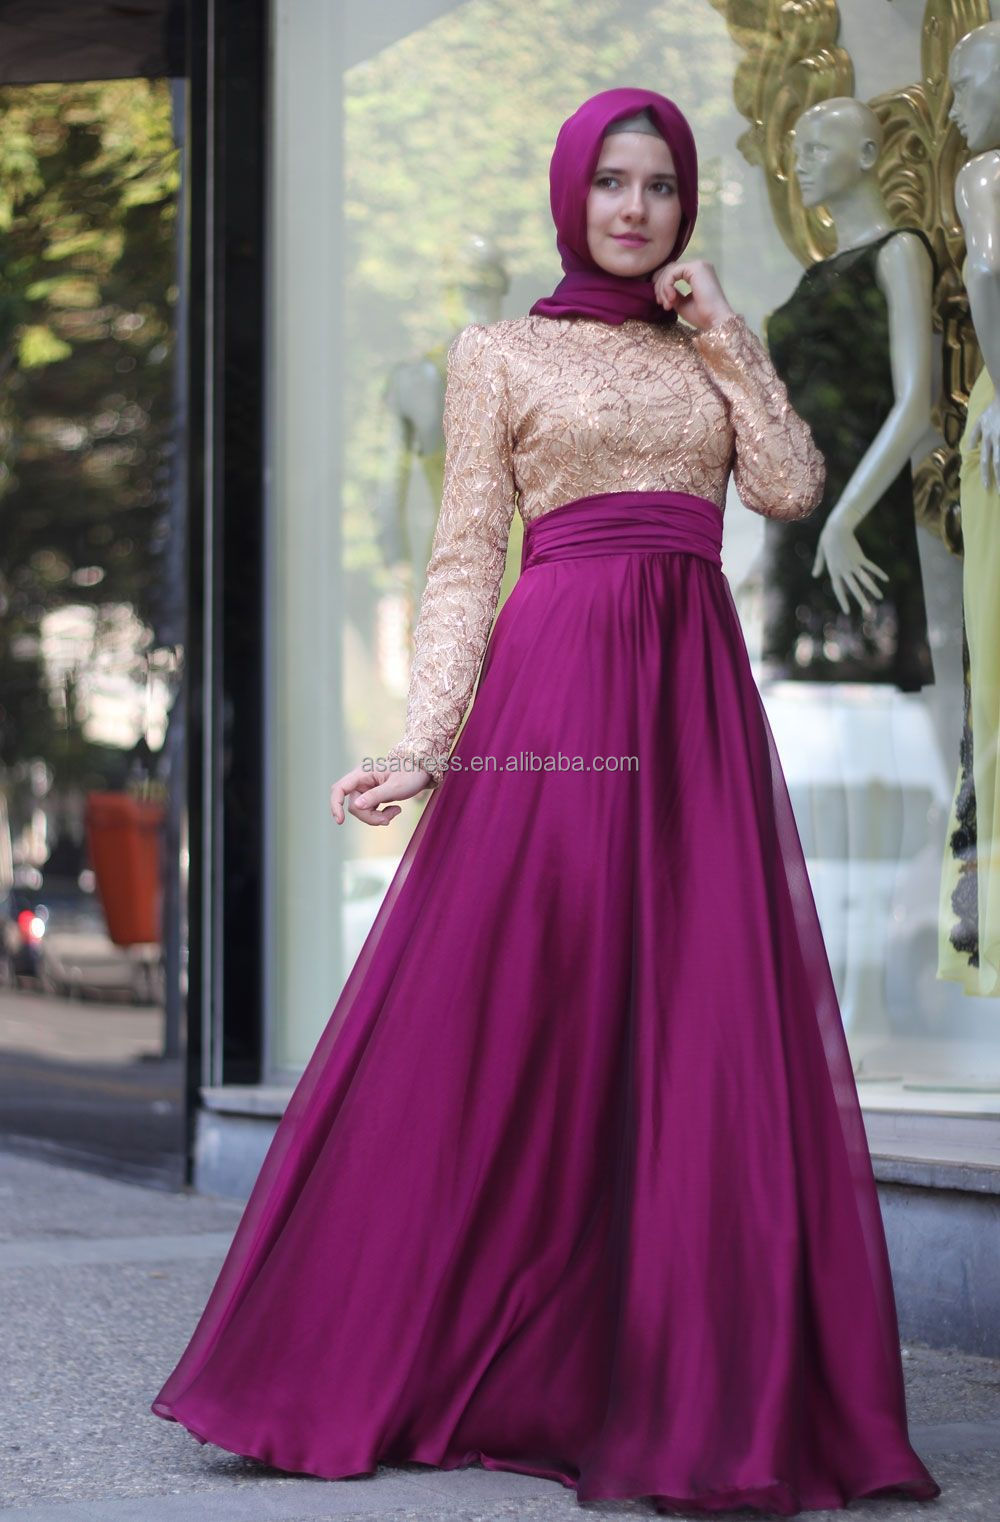 Ate13 High Neck Long Sleeve Abaya Dubai Kaftan Green Fushia Lace ...